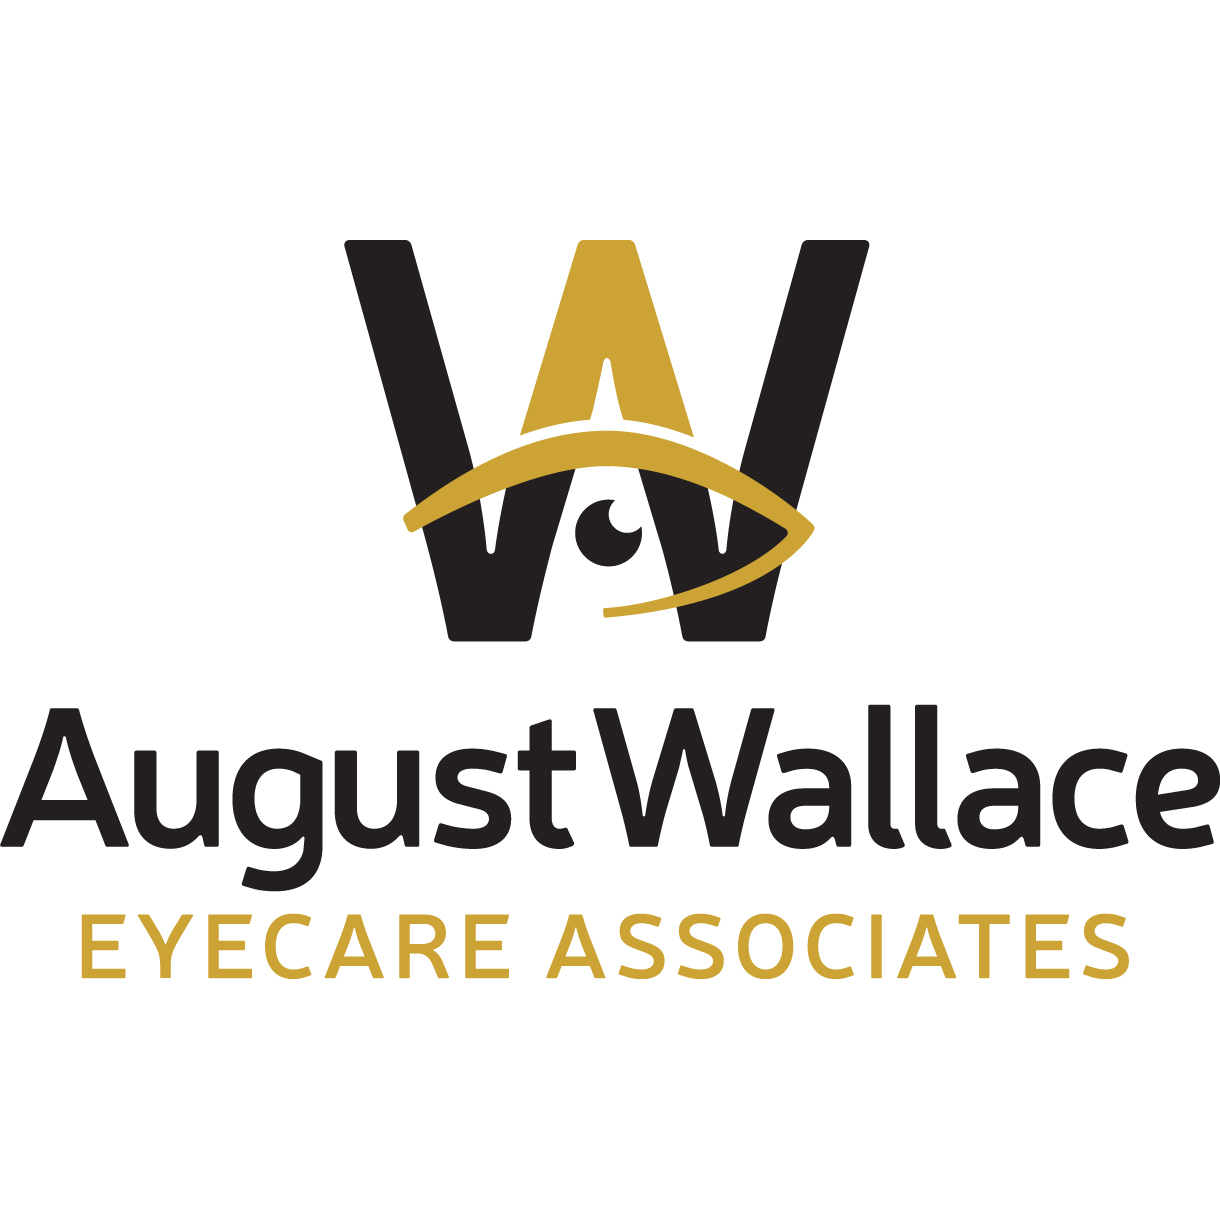 August Wallace Eyecare Associates image 17